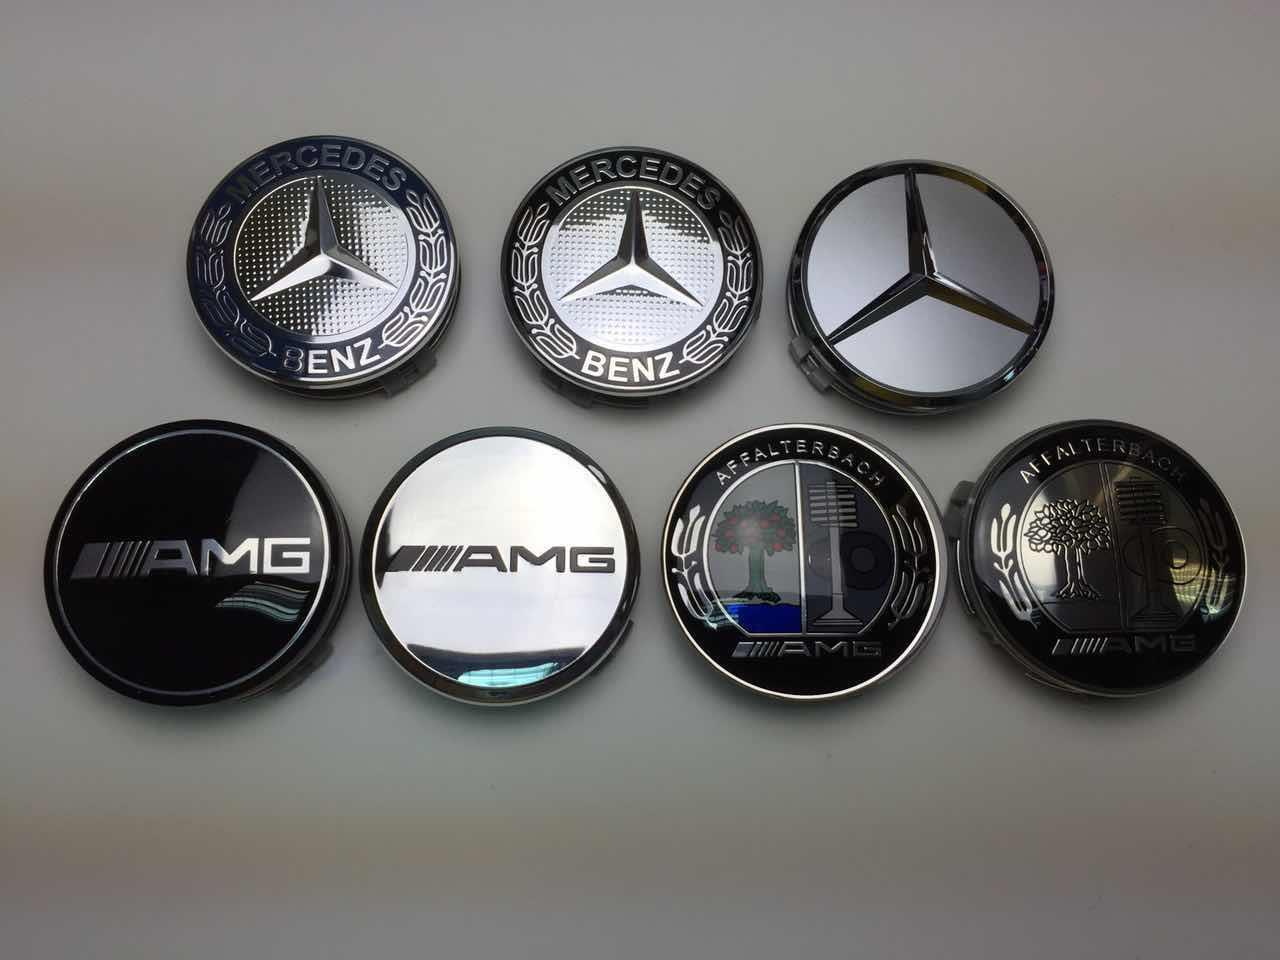 Mercedes benz amg and brabus end 5 12 2016 3 15 pm myt for Mercedes benz hats sale